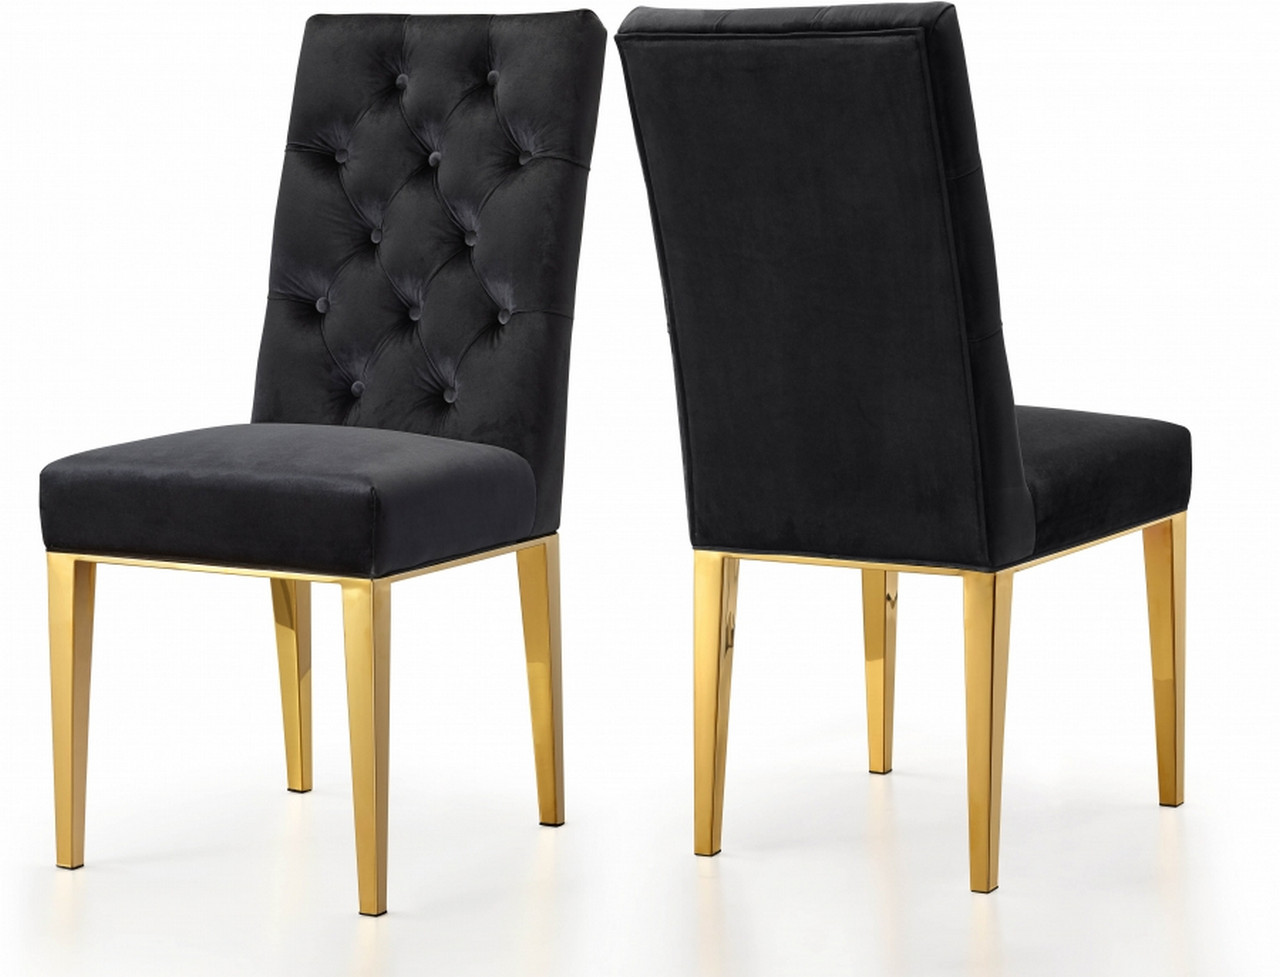 Details About Set Of 2 Dorian Plush Black Button Tufted Velvet Dining Chair W Tapered Gold Ste